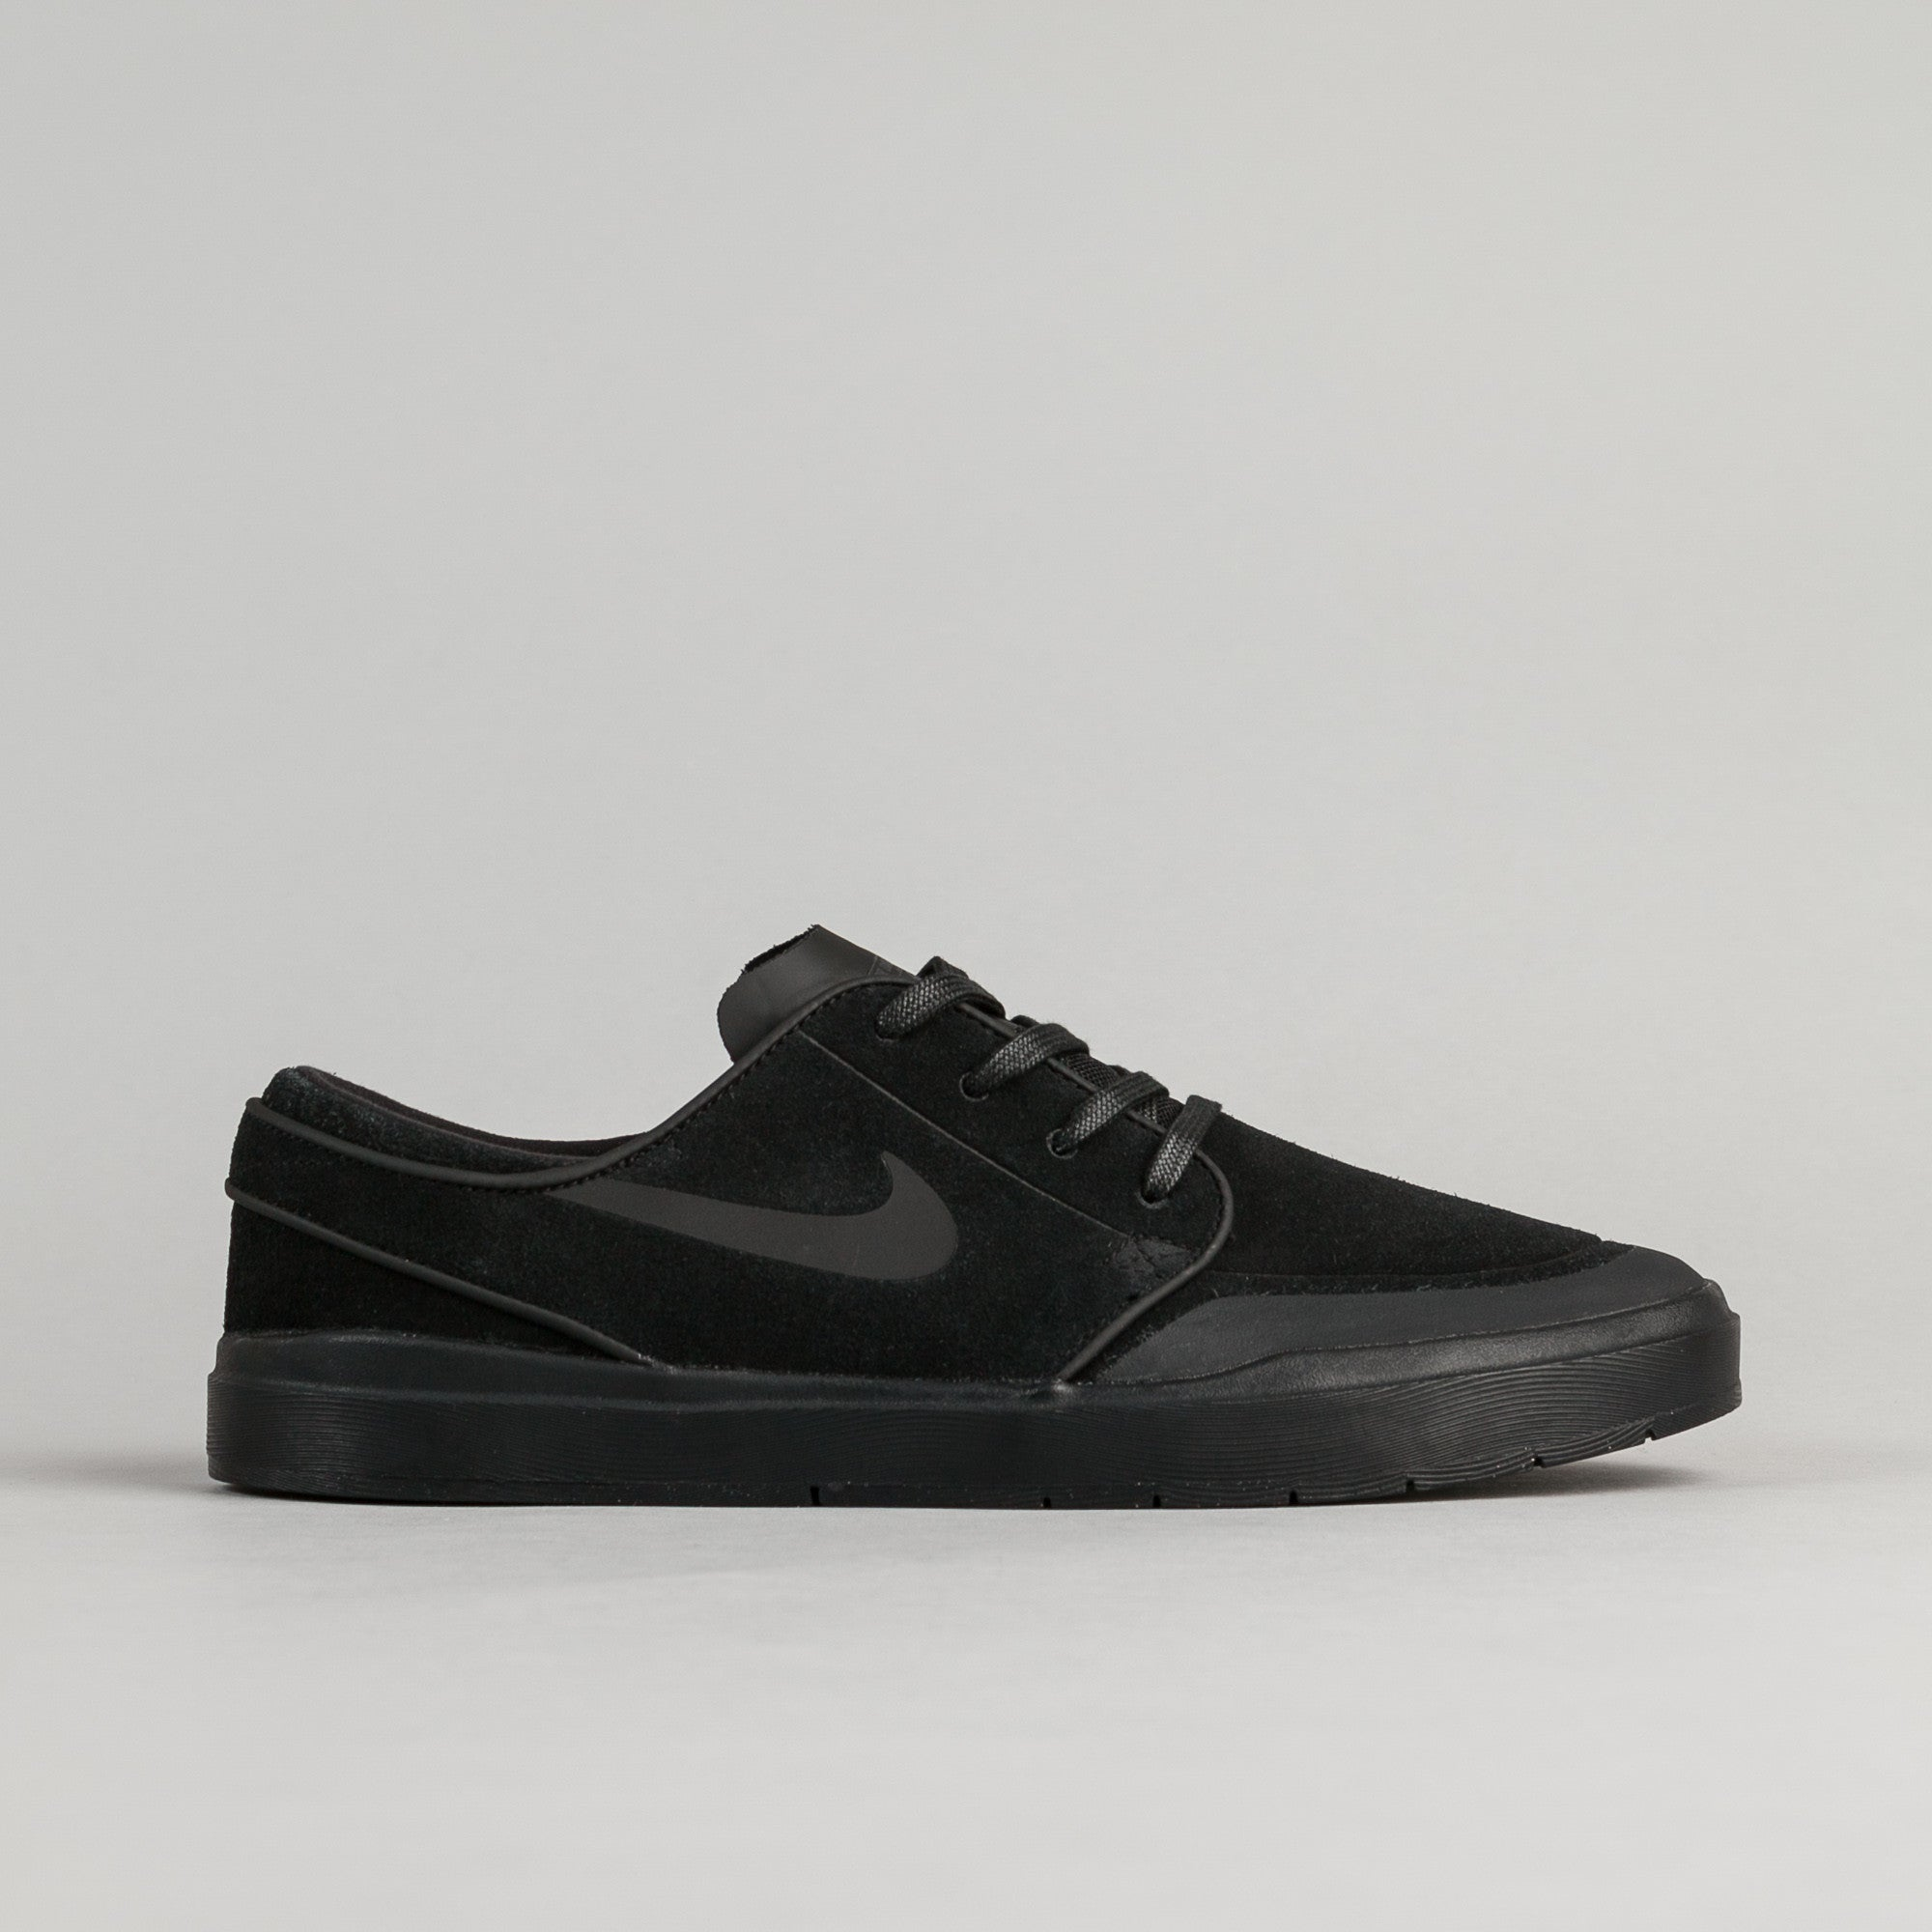 best service 02fef d0422 Nike SB Stefan Janoski Hyperfeel XT Shoes - Black   Black - Anthracite -  White